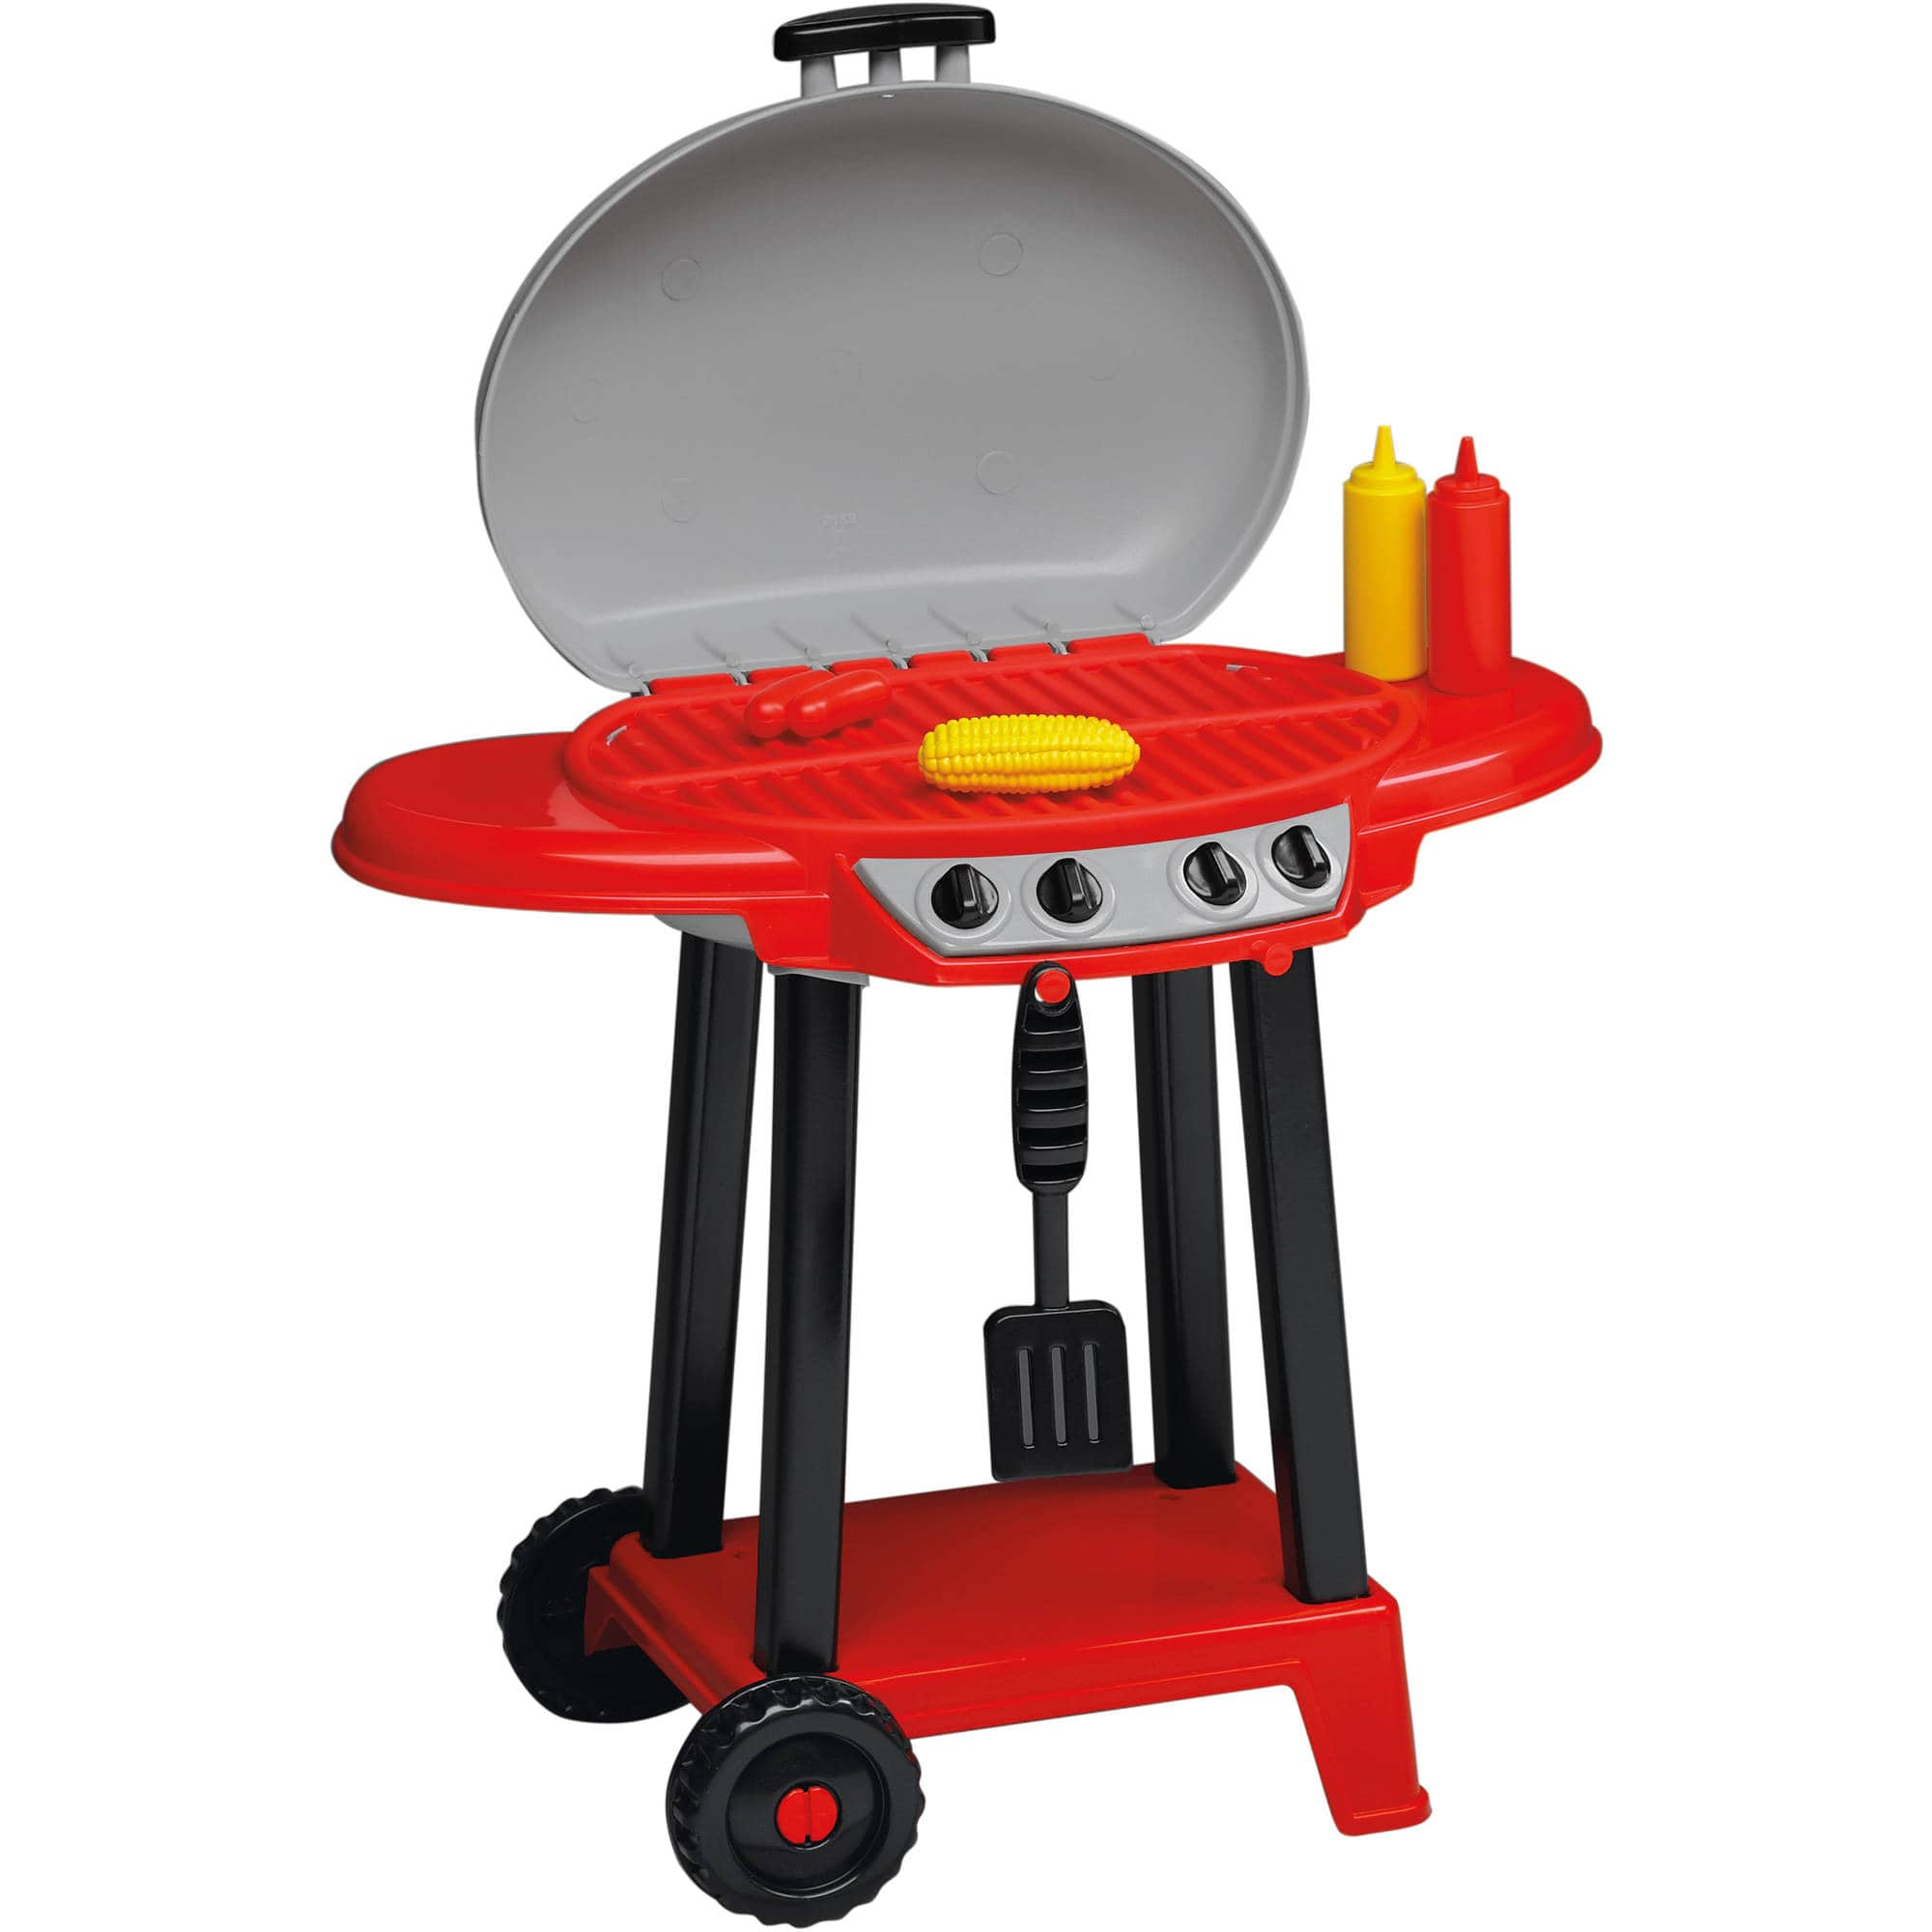 My Very Own Play Grill Set with 7 Accessories $10 + Free store pickup at Walmart